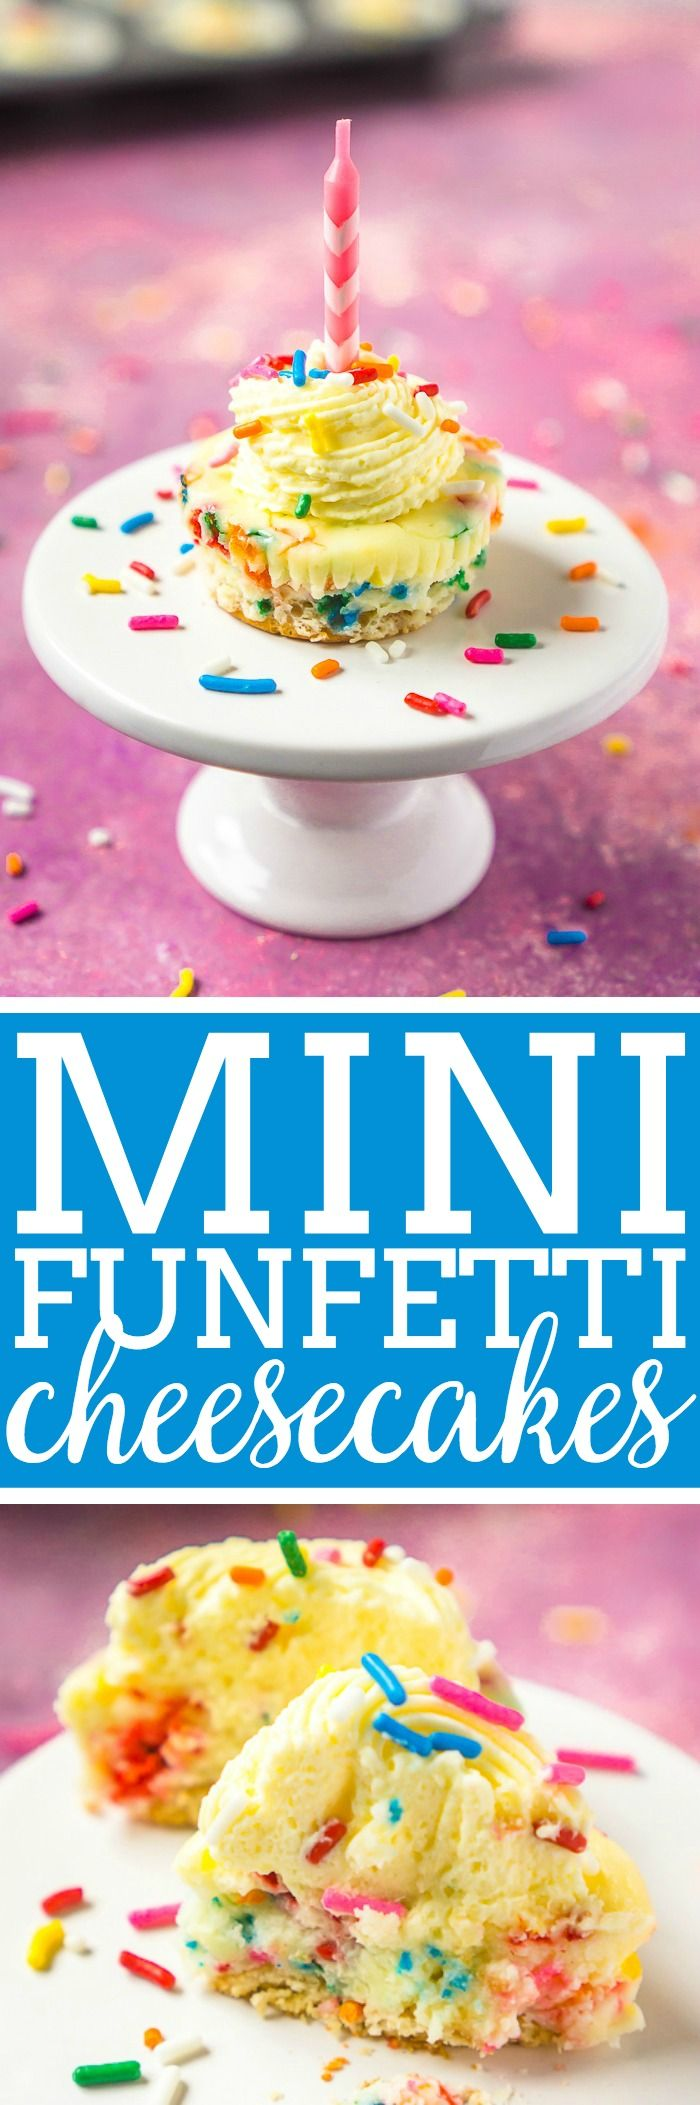 My favorite birthday cake recipe? Funfetti Cheesecake, of course! Cute, creamy, and colorful - these mini cheeseakes with vanilla wafers for crusts are an easy dessert recipe you are going to love!  The Love Nerds #cheesecakerecipe #birthdaycake #funfettirecipe via @lovenerdmaggie